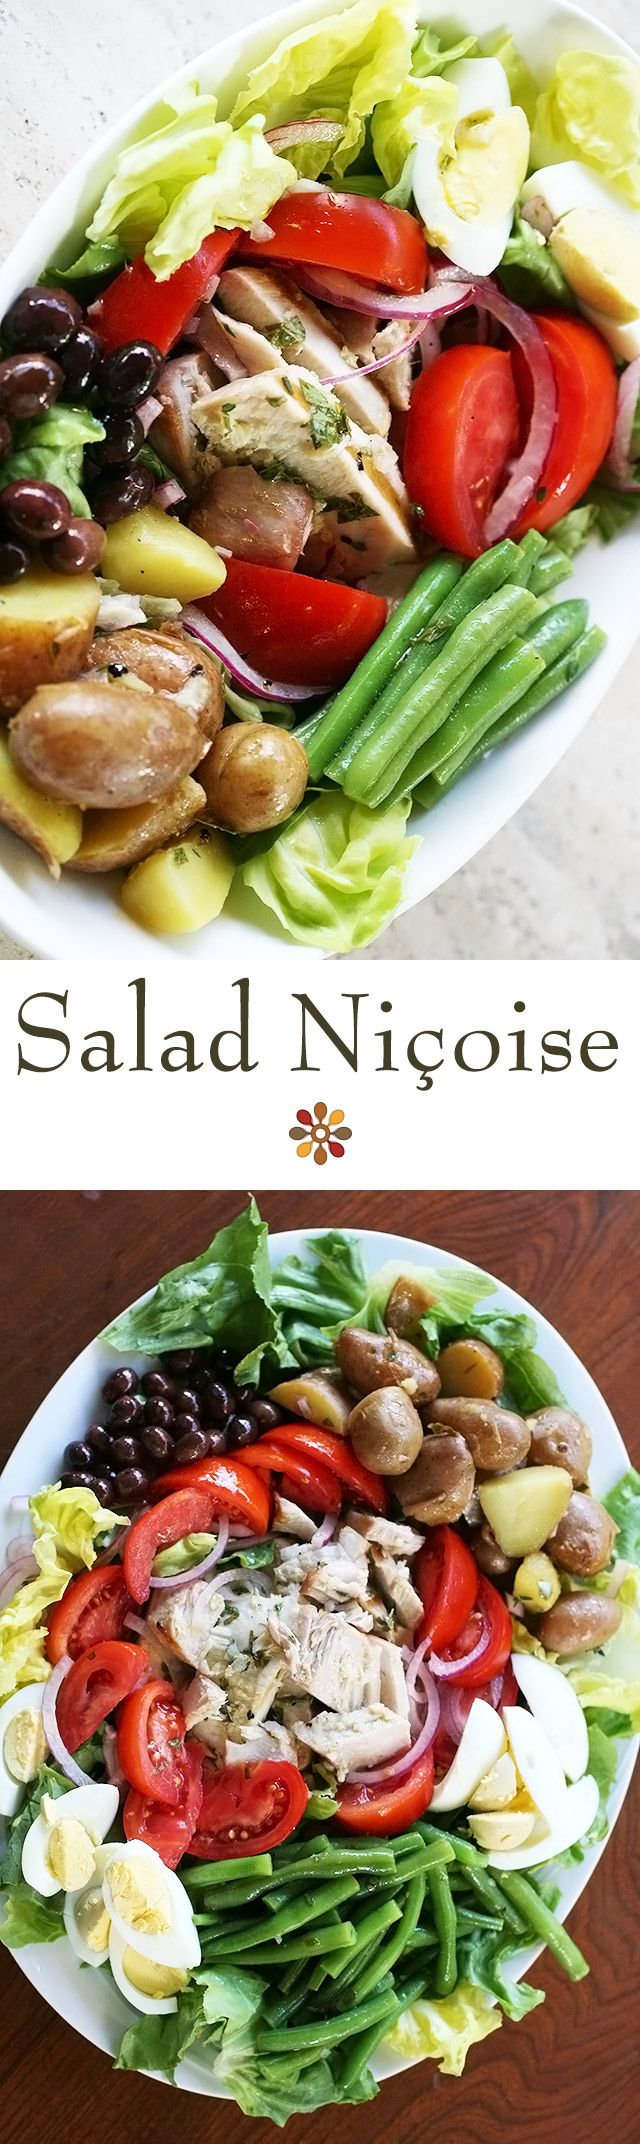 Nicoise Salad ~ Salad Nicoise, a French composed salad with tuna, green beans, hard boiled eggs, tomatoes, onion, capers, and potatoes. ~ SimplyRecipes.com